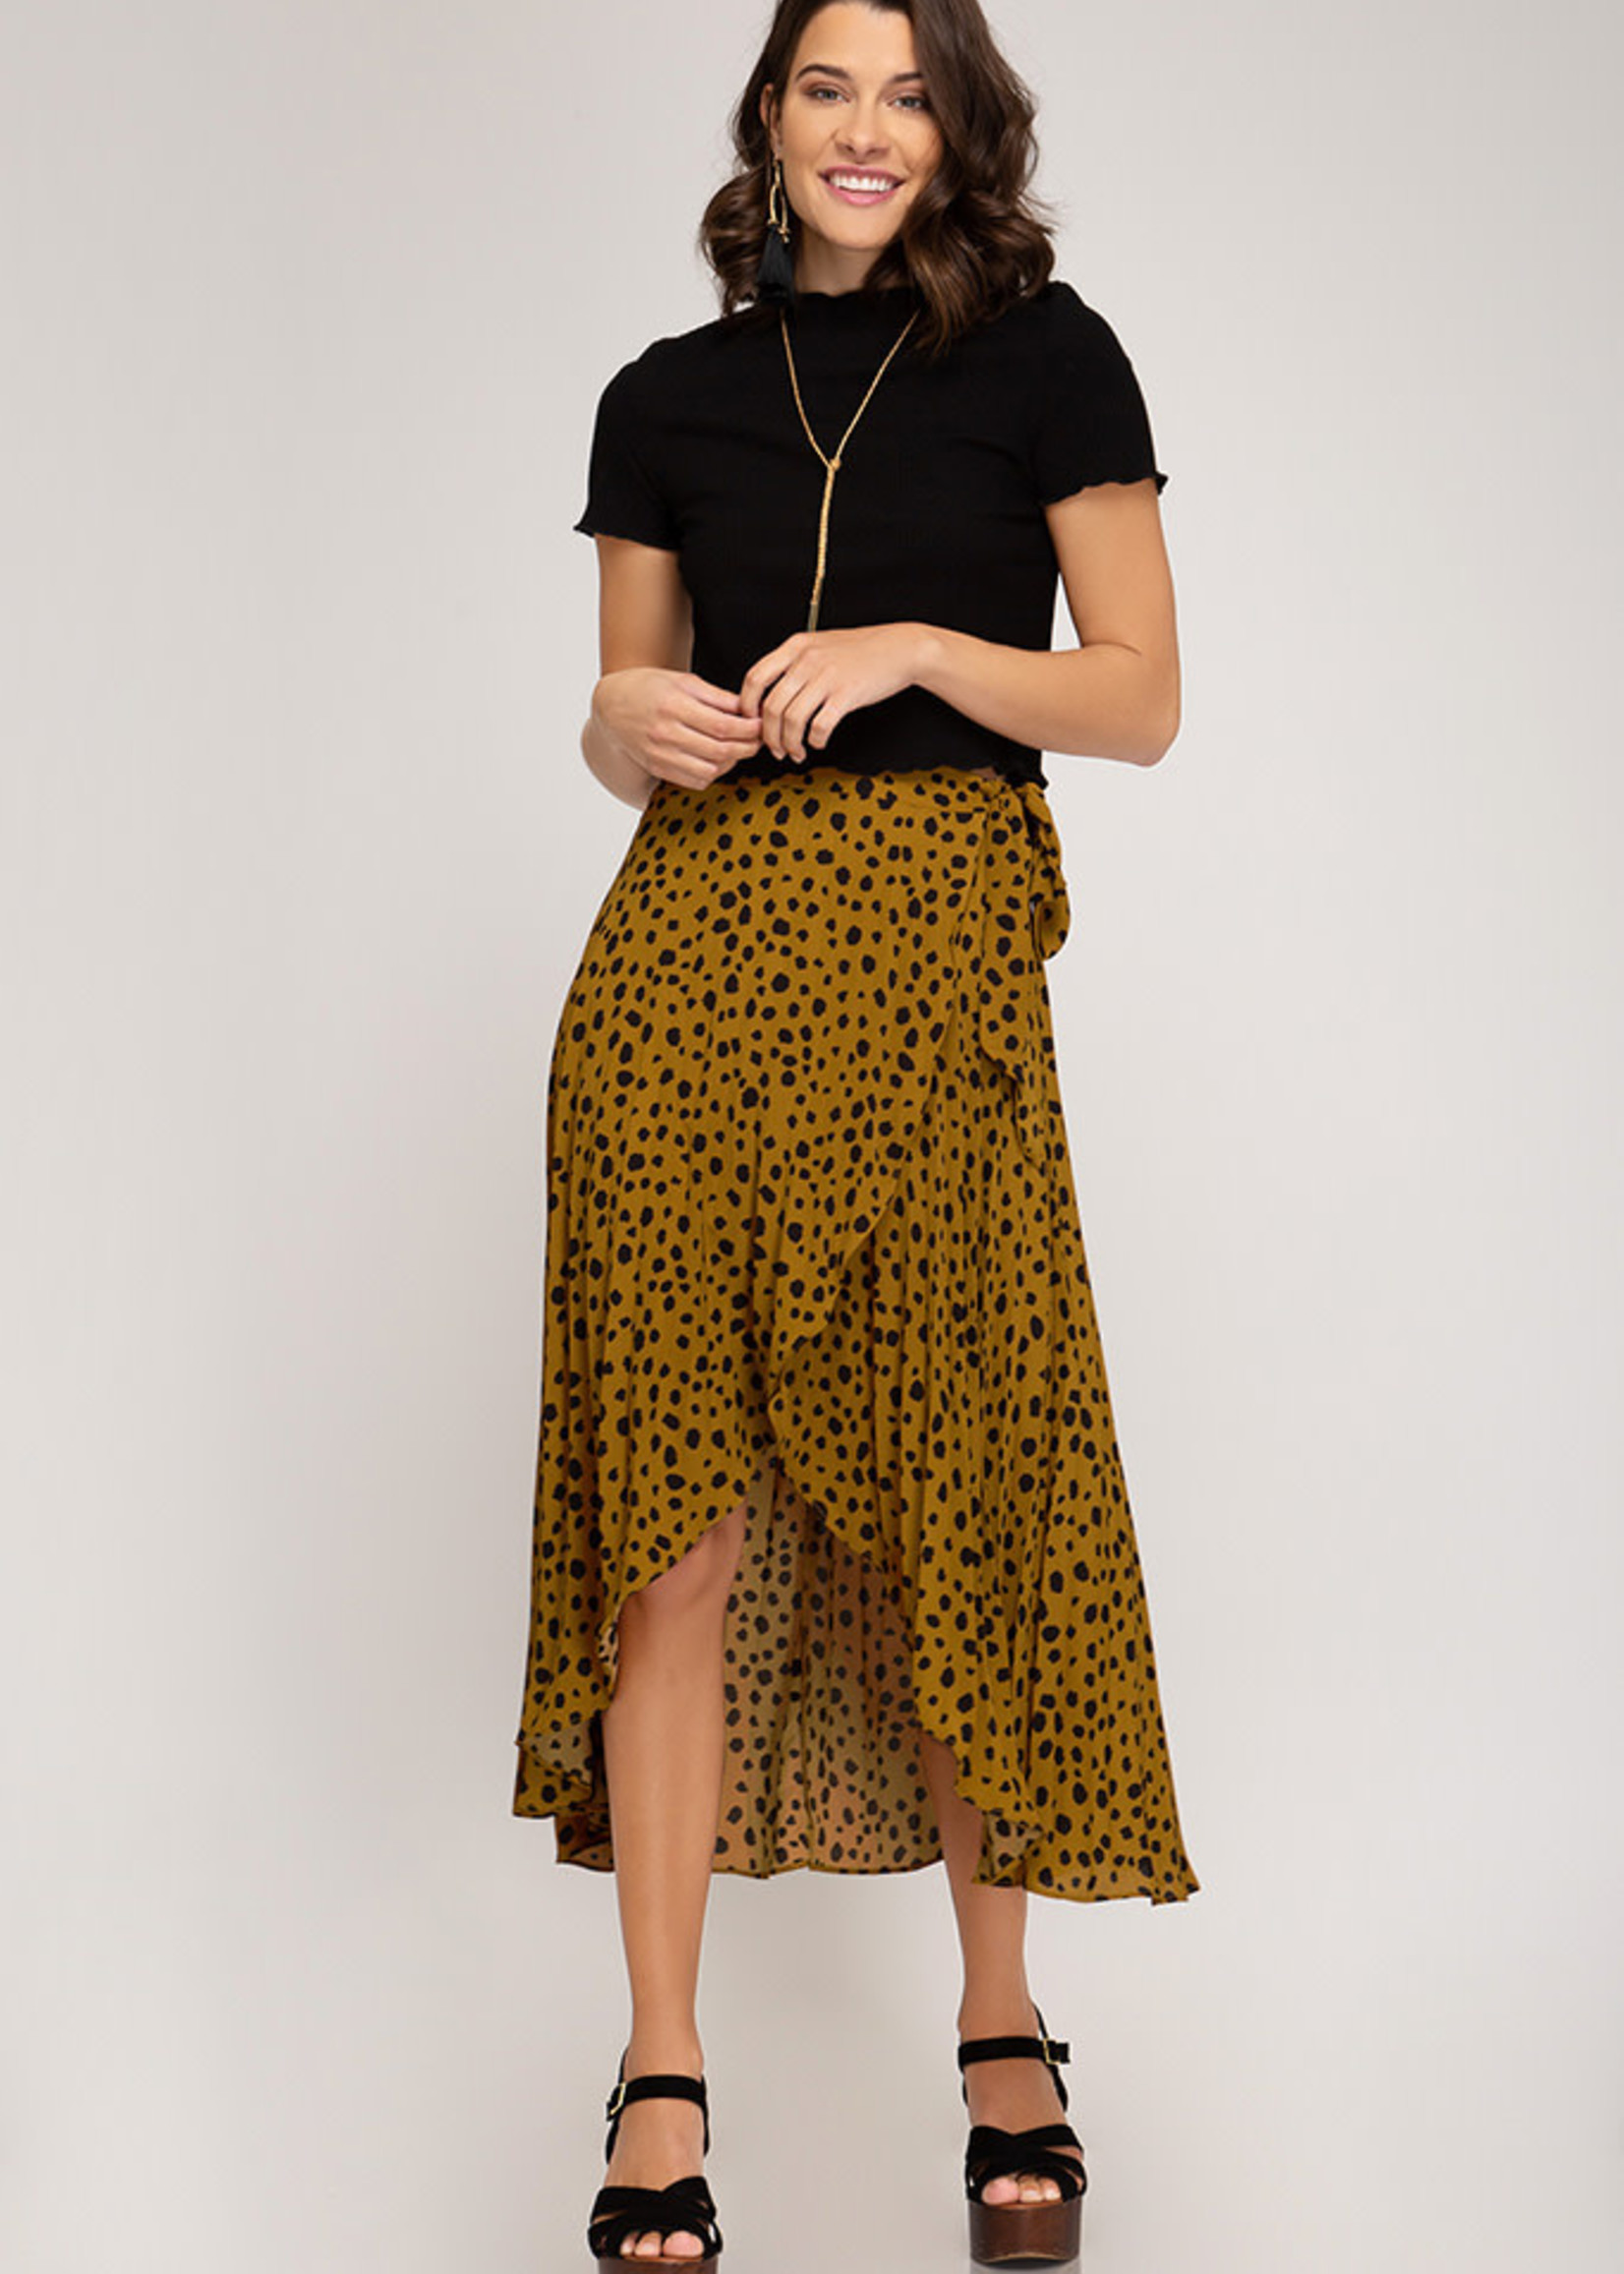 LeBLANC finds HI LOW, Cheetah Pleated skirt